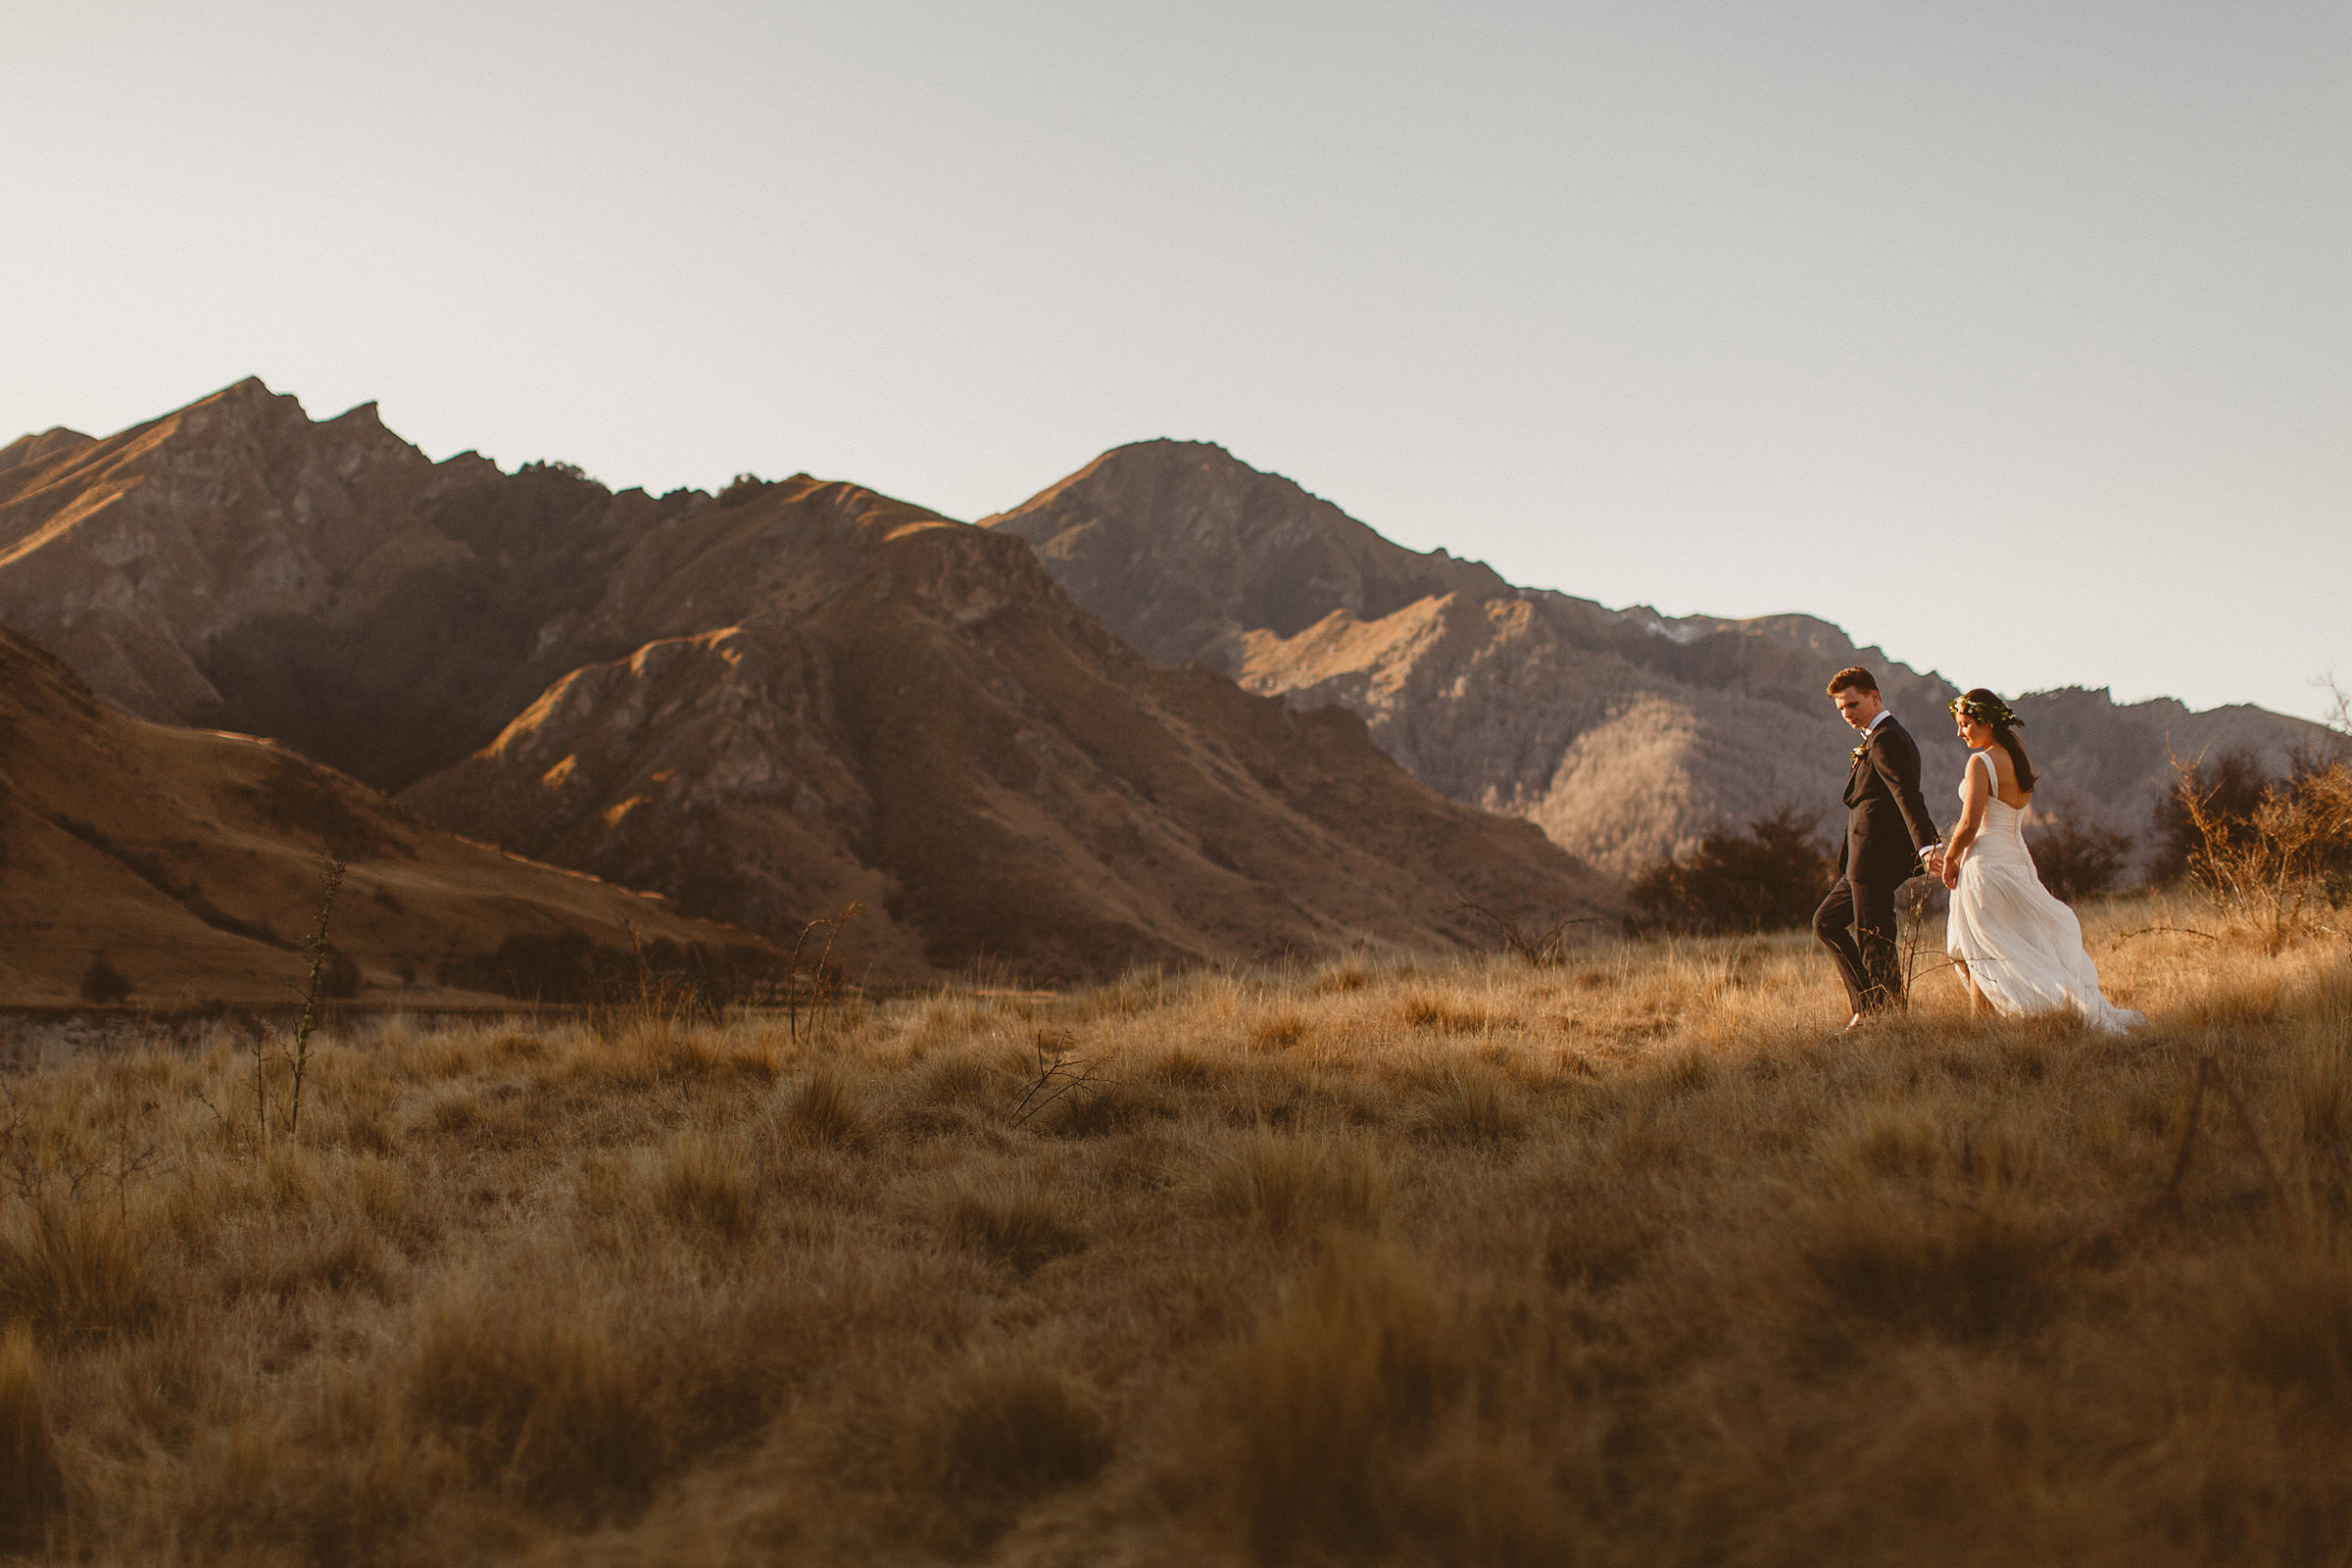 Couple walking against mountain backdrop - photo by Ed Peers Photography